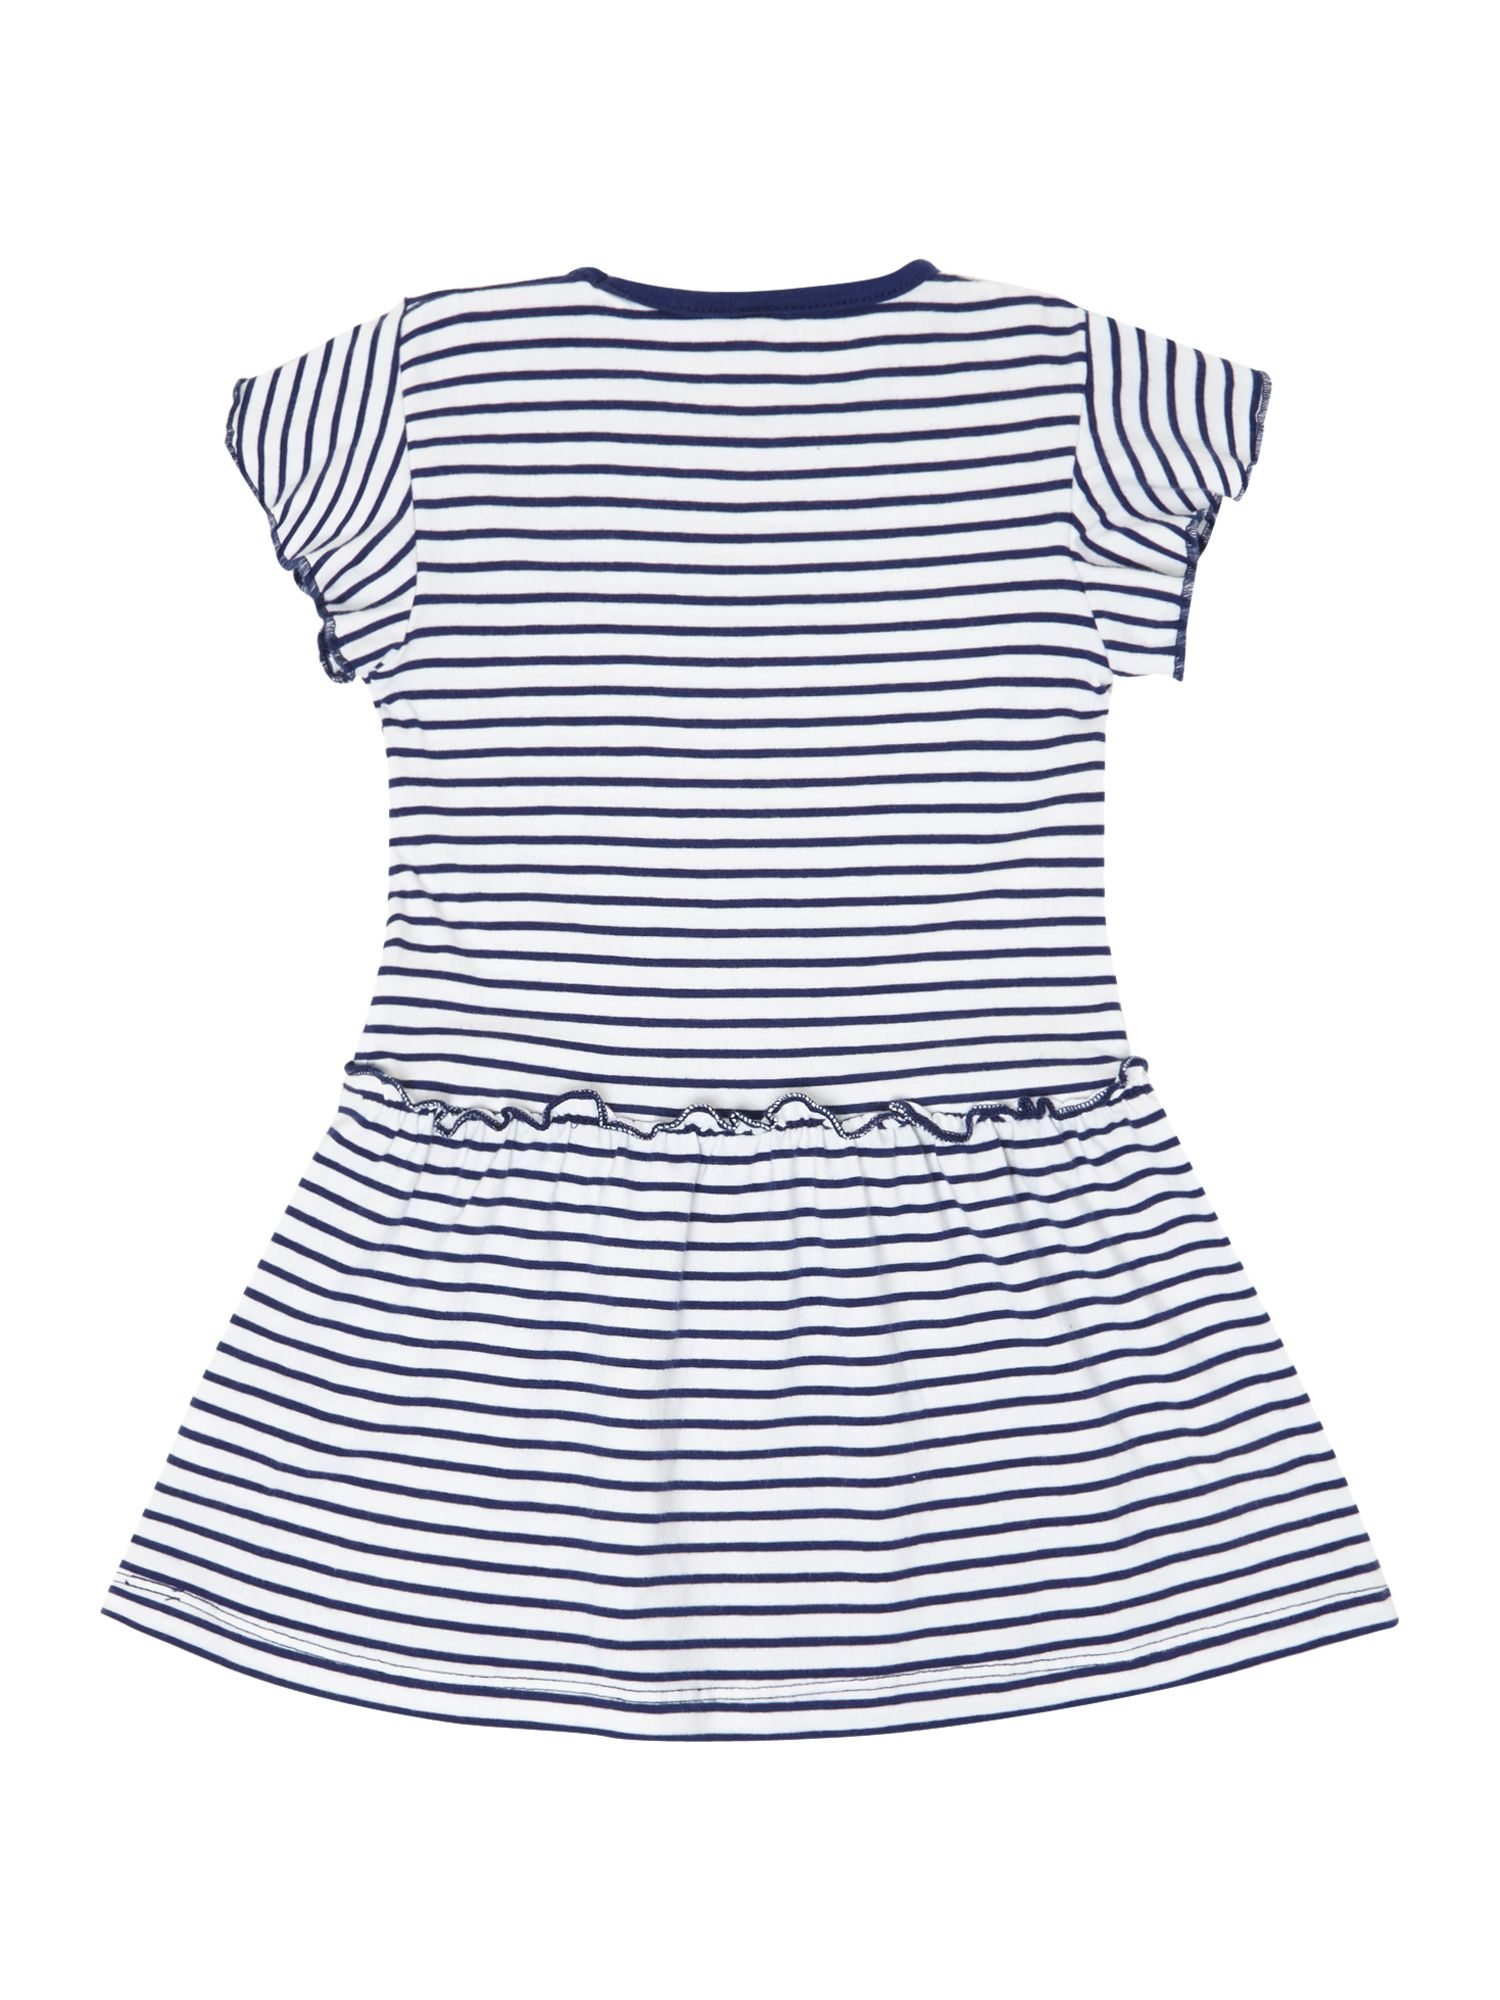 Girls striped dress with frill sleeves